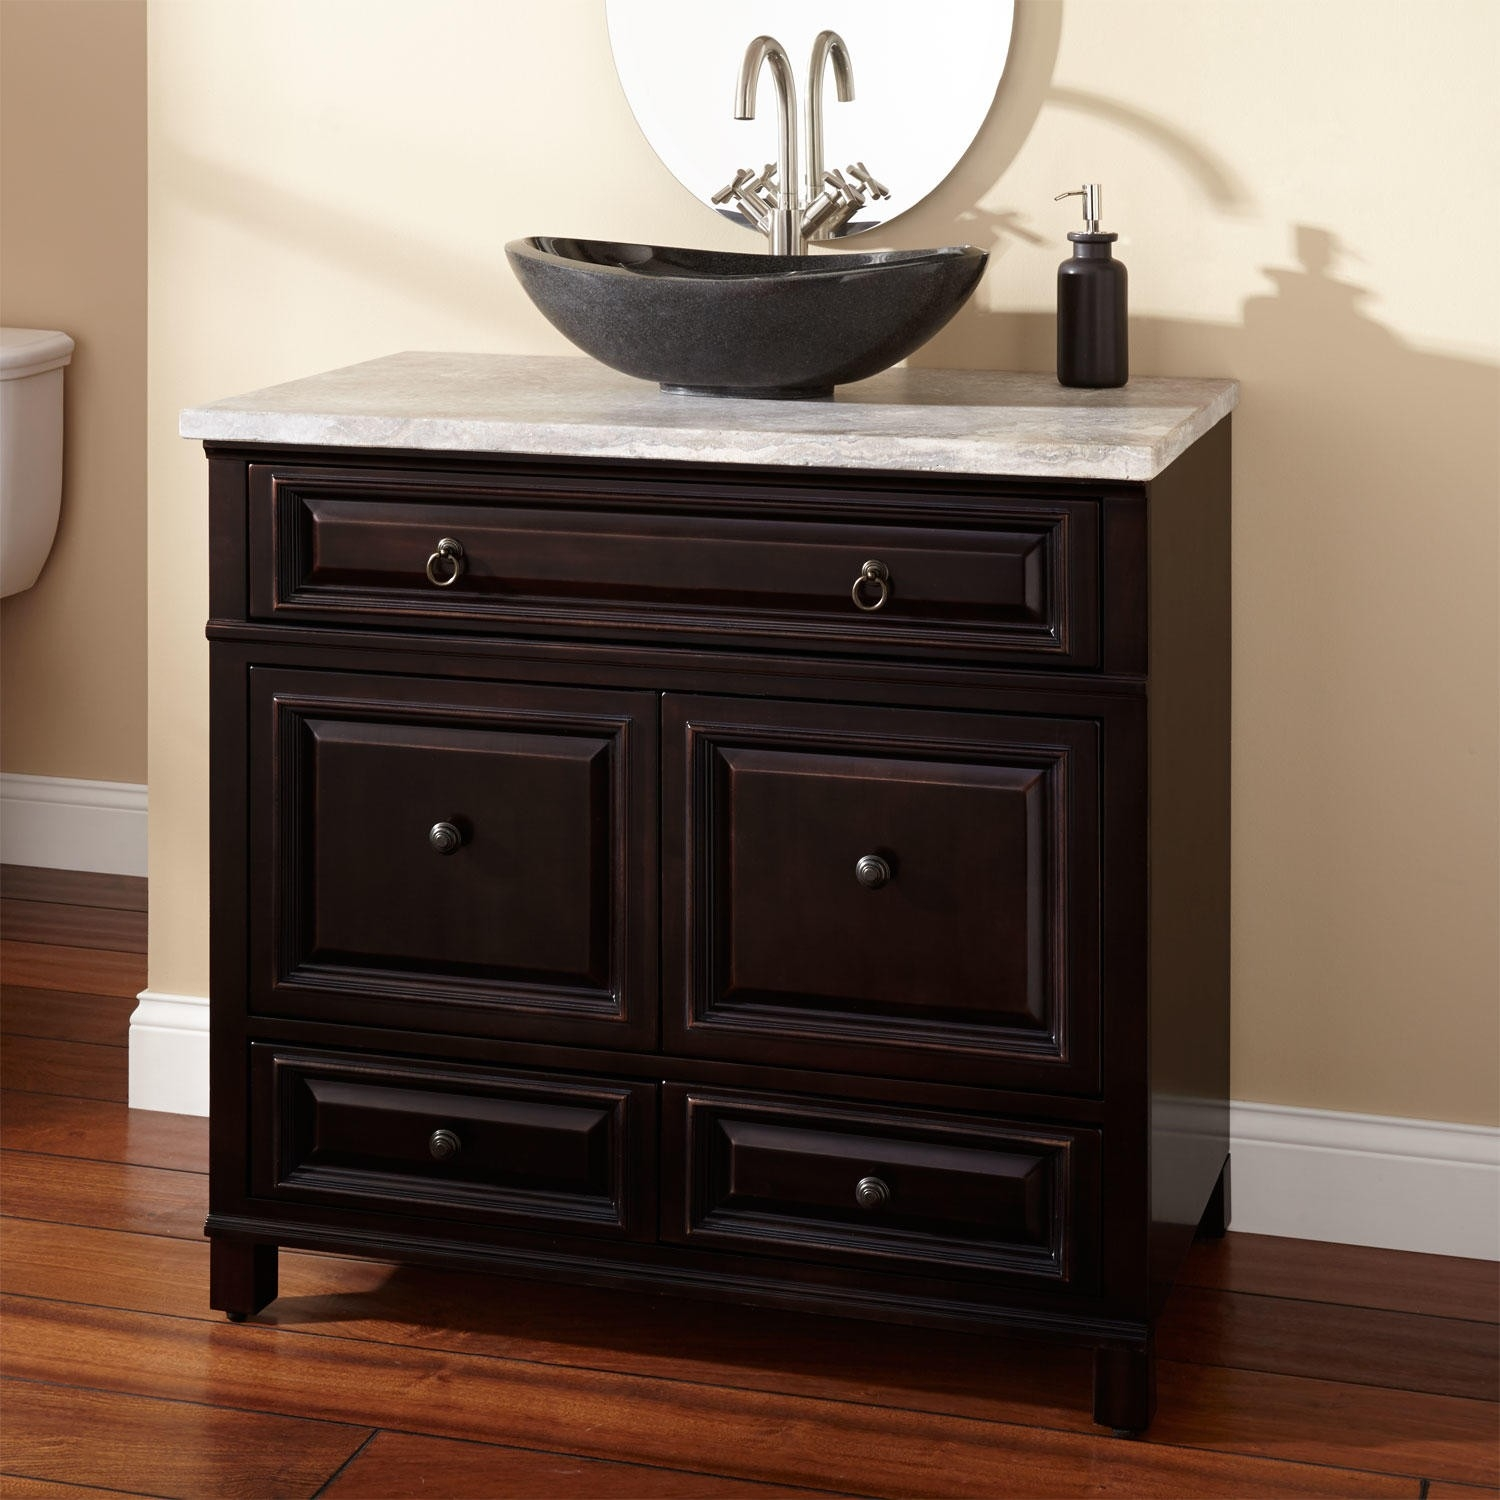 Bathroom Vanities With Glass Sinks